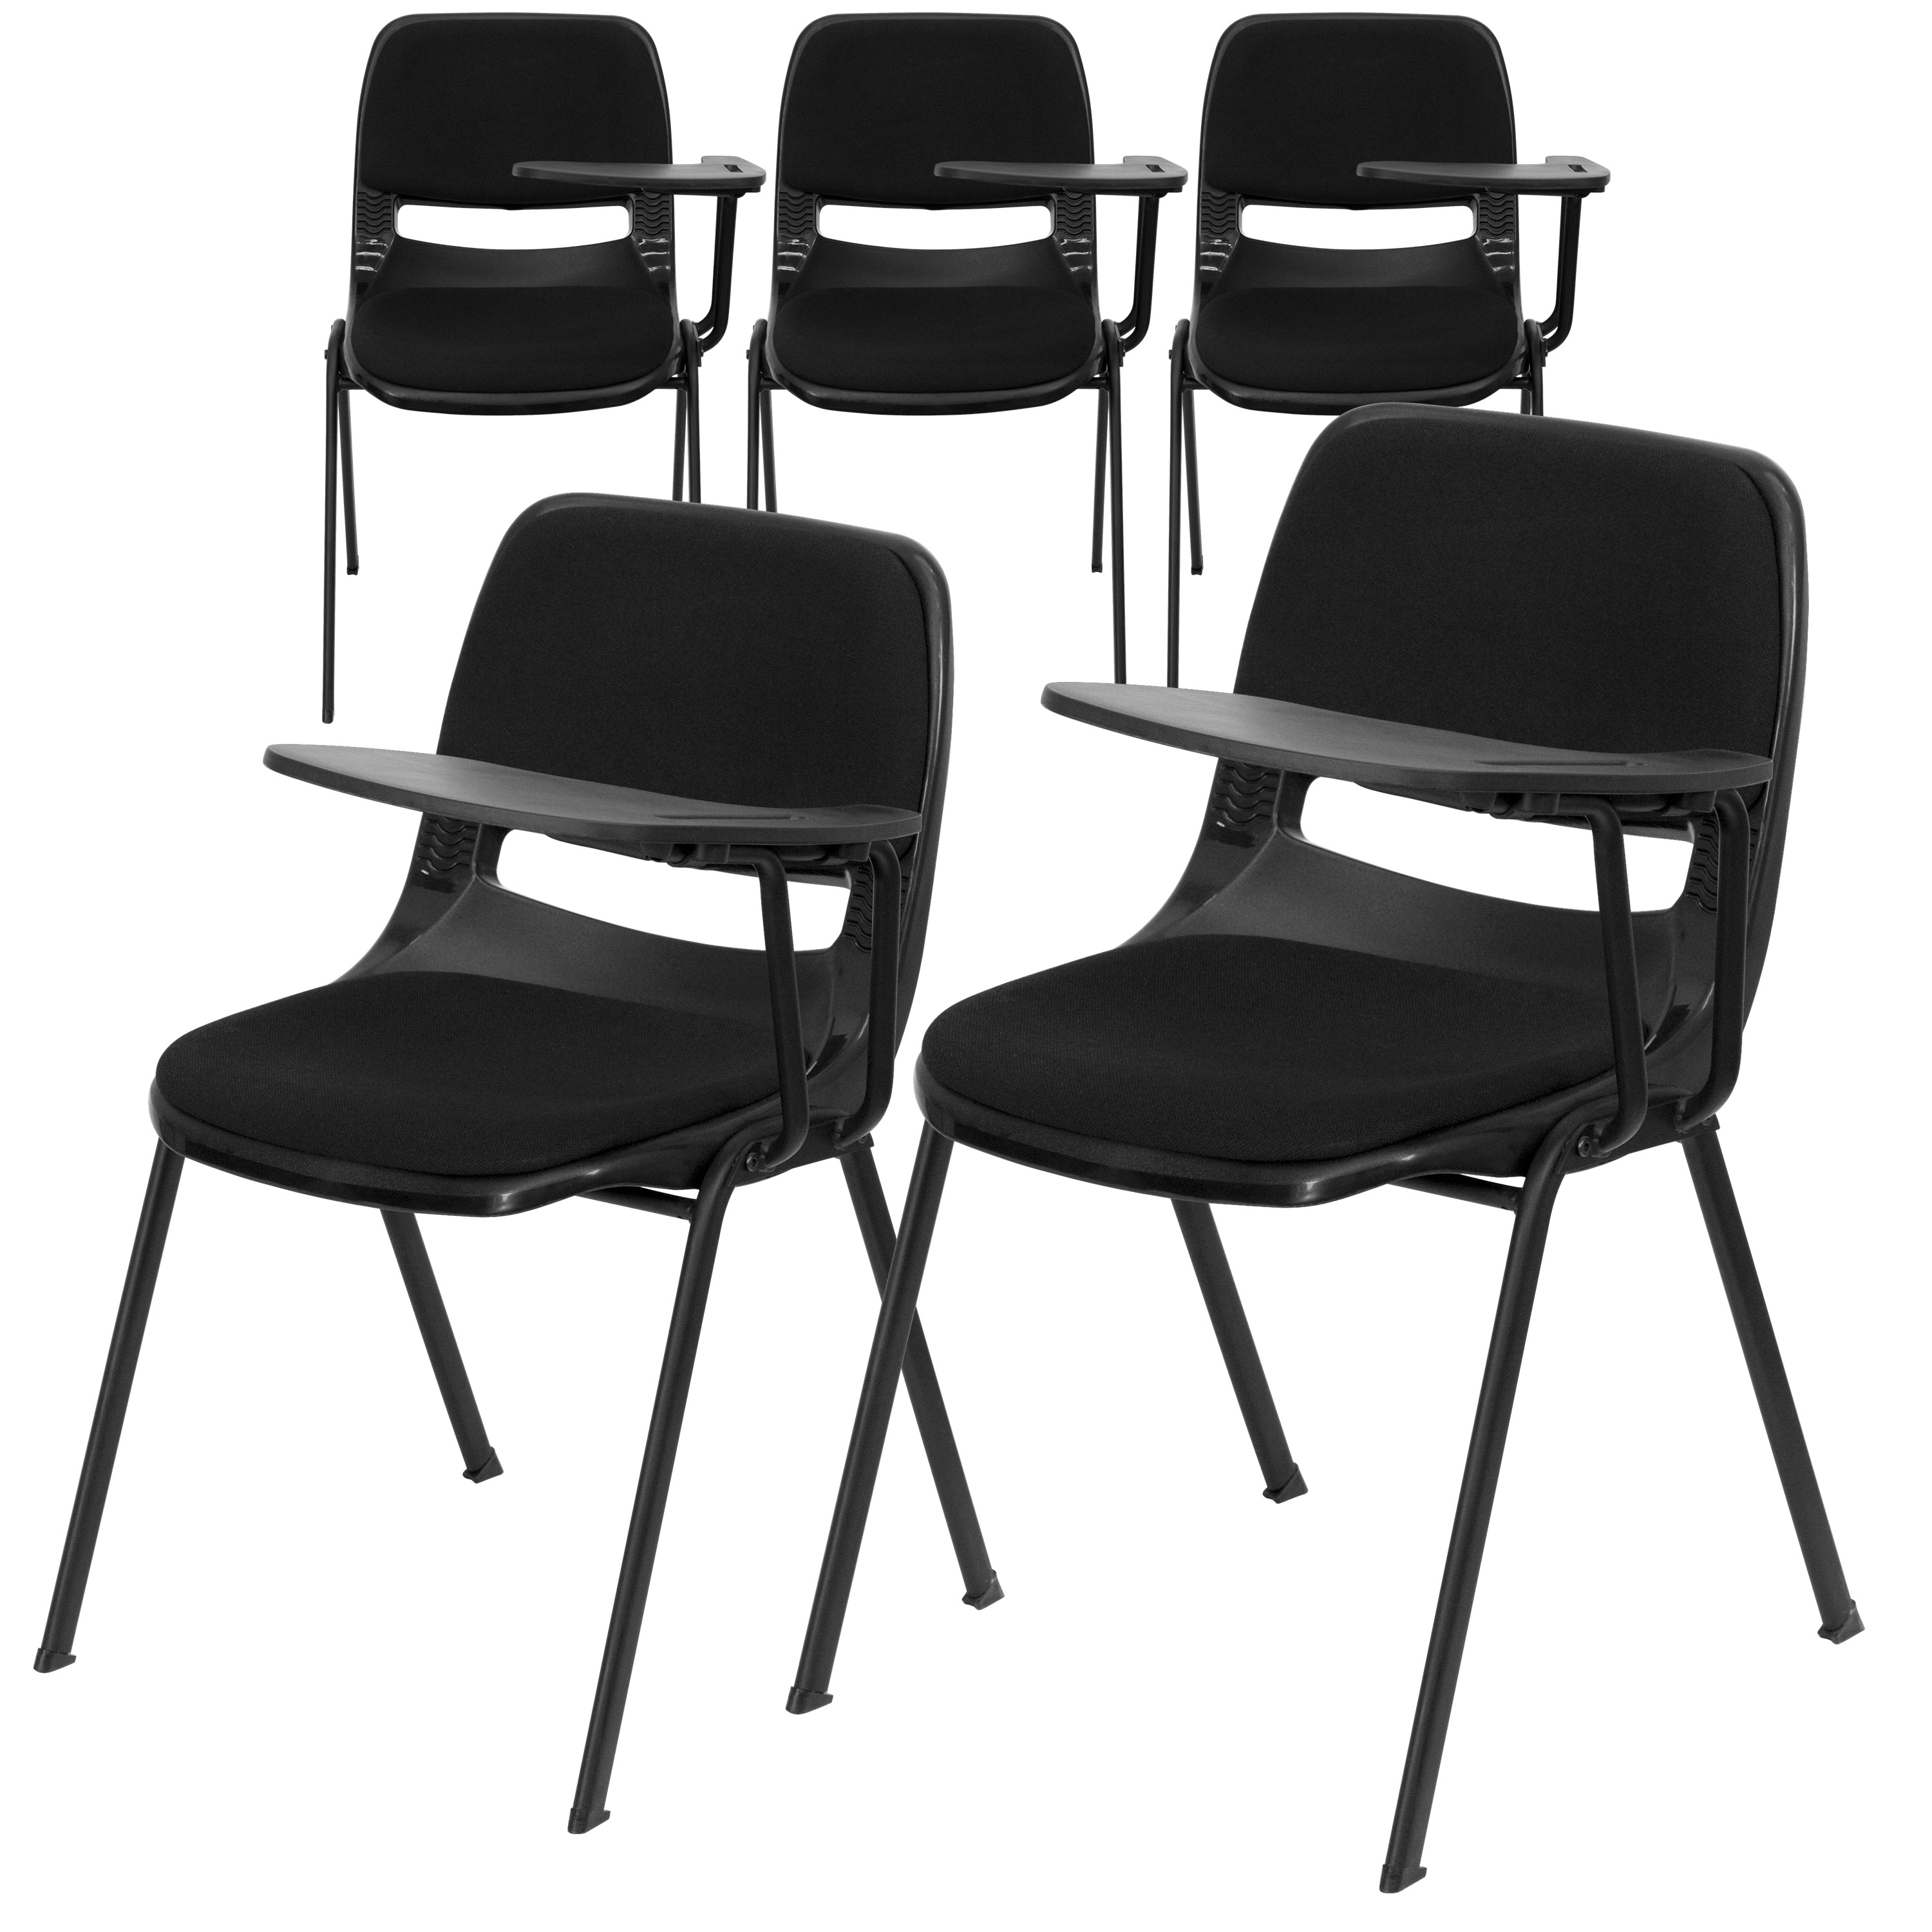 Shop Left Hand Tablet Arm Chair - Free Shipping Today - Overstock - 27066764  sc 1 st  Overstock.com & Shop Left Hand Tablet Arm Chair - Free Shipping Today - Overstock ...